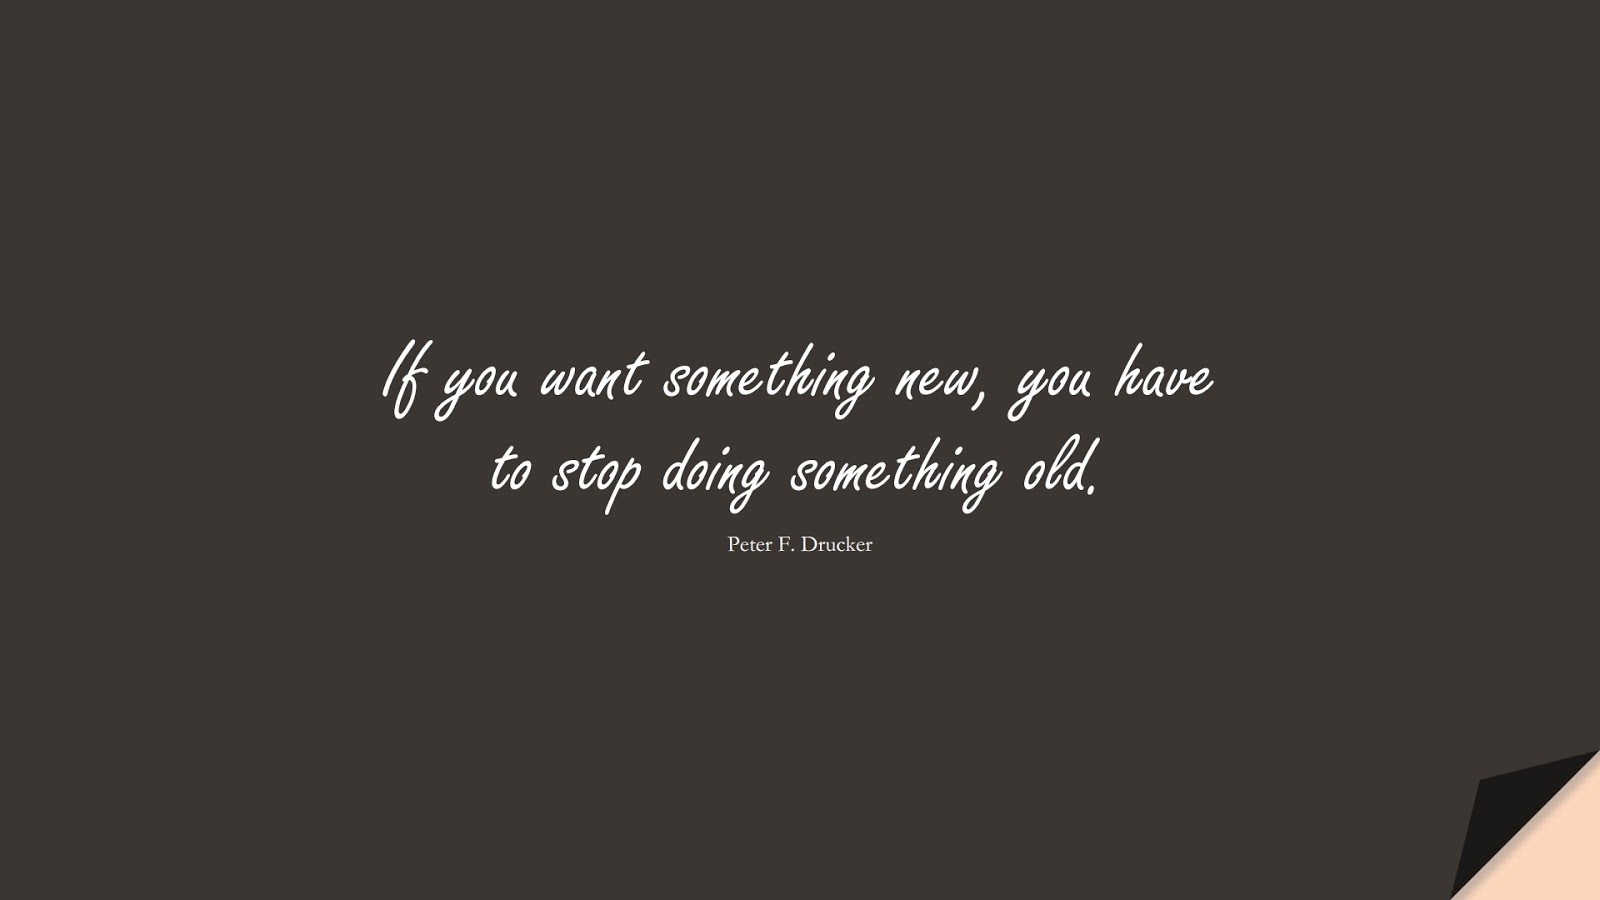 If you want something new, you have to stop doing something old. (Peter F. Drucker);  #ShortQuotes